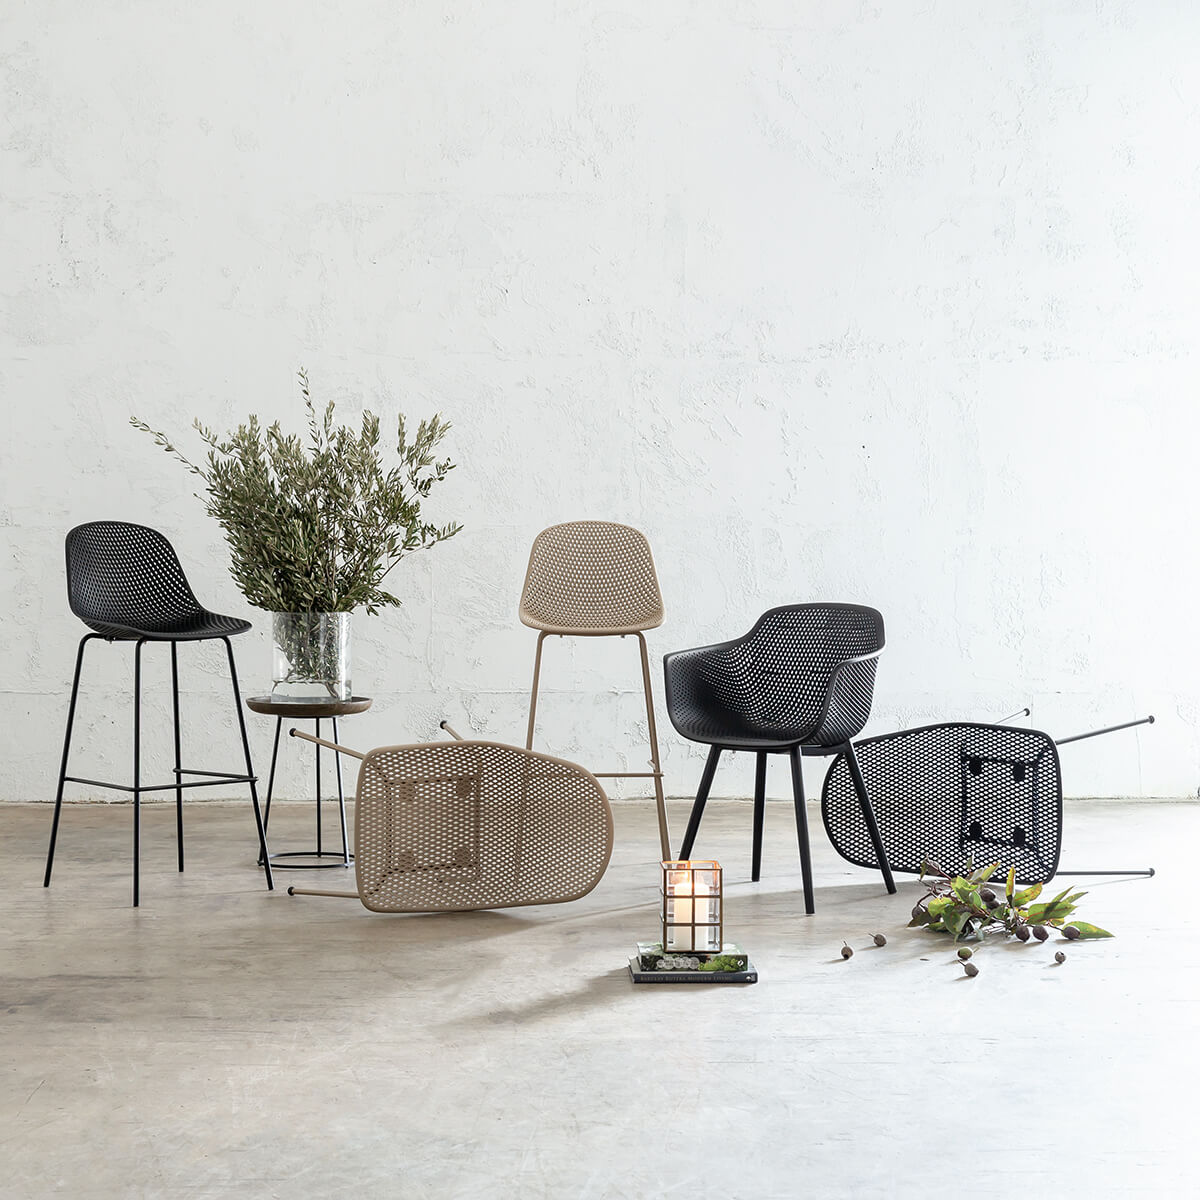 ETTA MESH INDOOR + OUTDOOR DINING + BAR CHAIRS